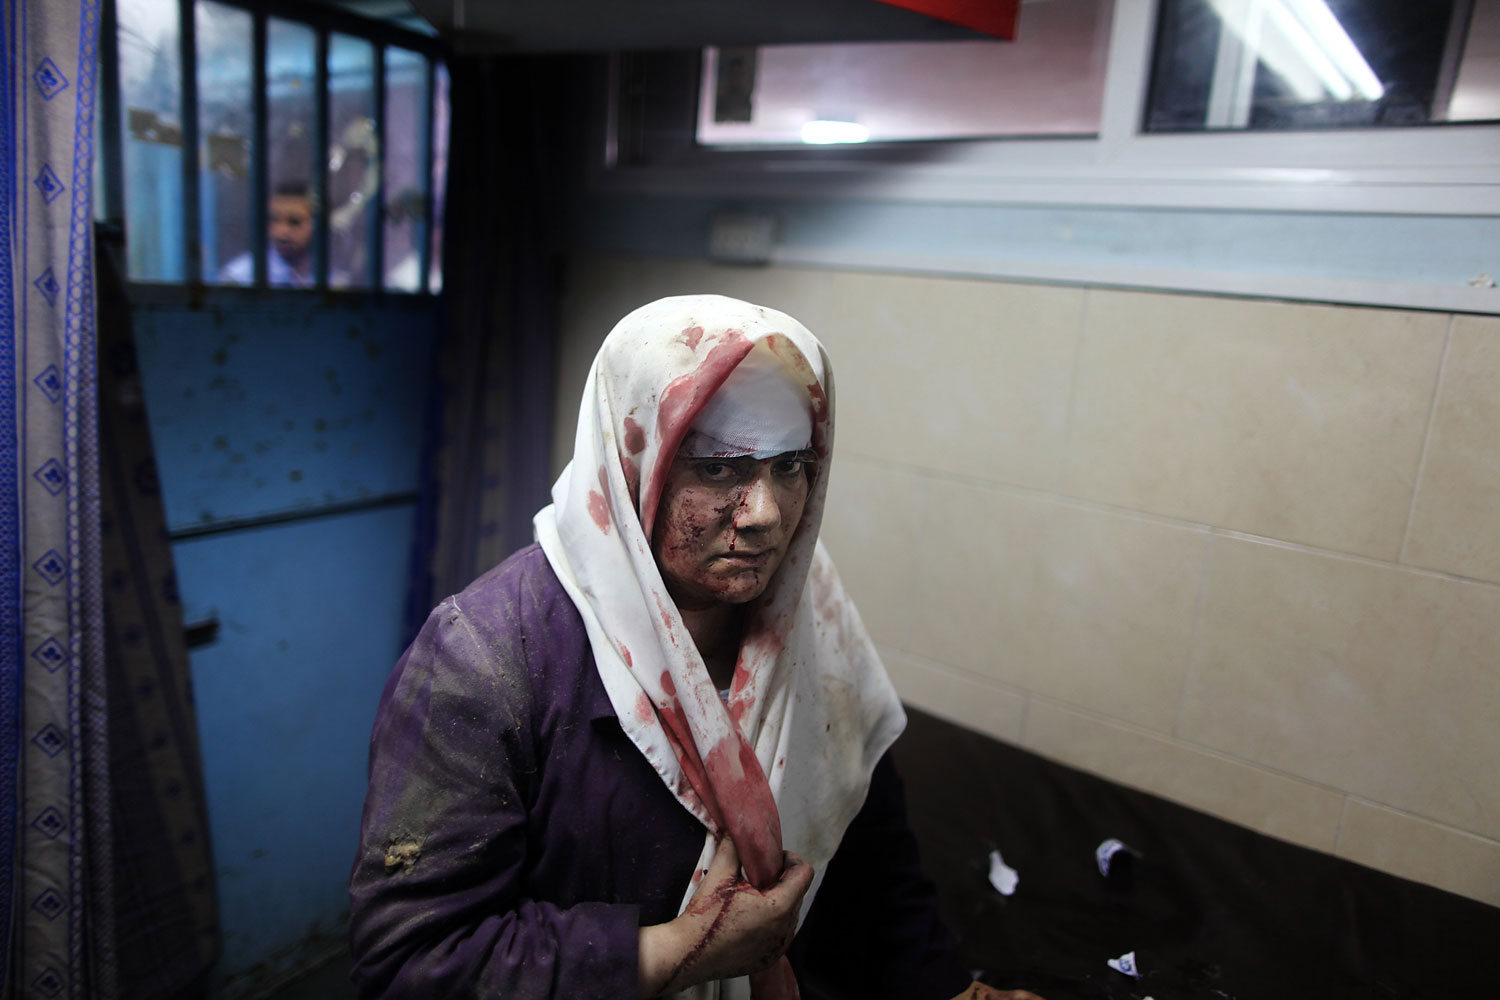 A Palestinian woman, who medics said was wounded by Israeli shelling, receives treatment at al-Shifa hospital in Gaza City, July 20, 2014.